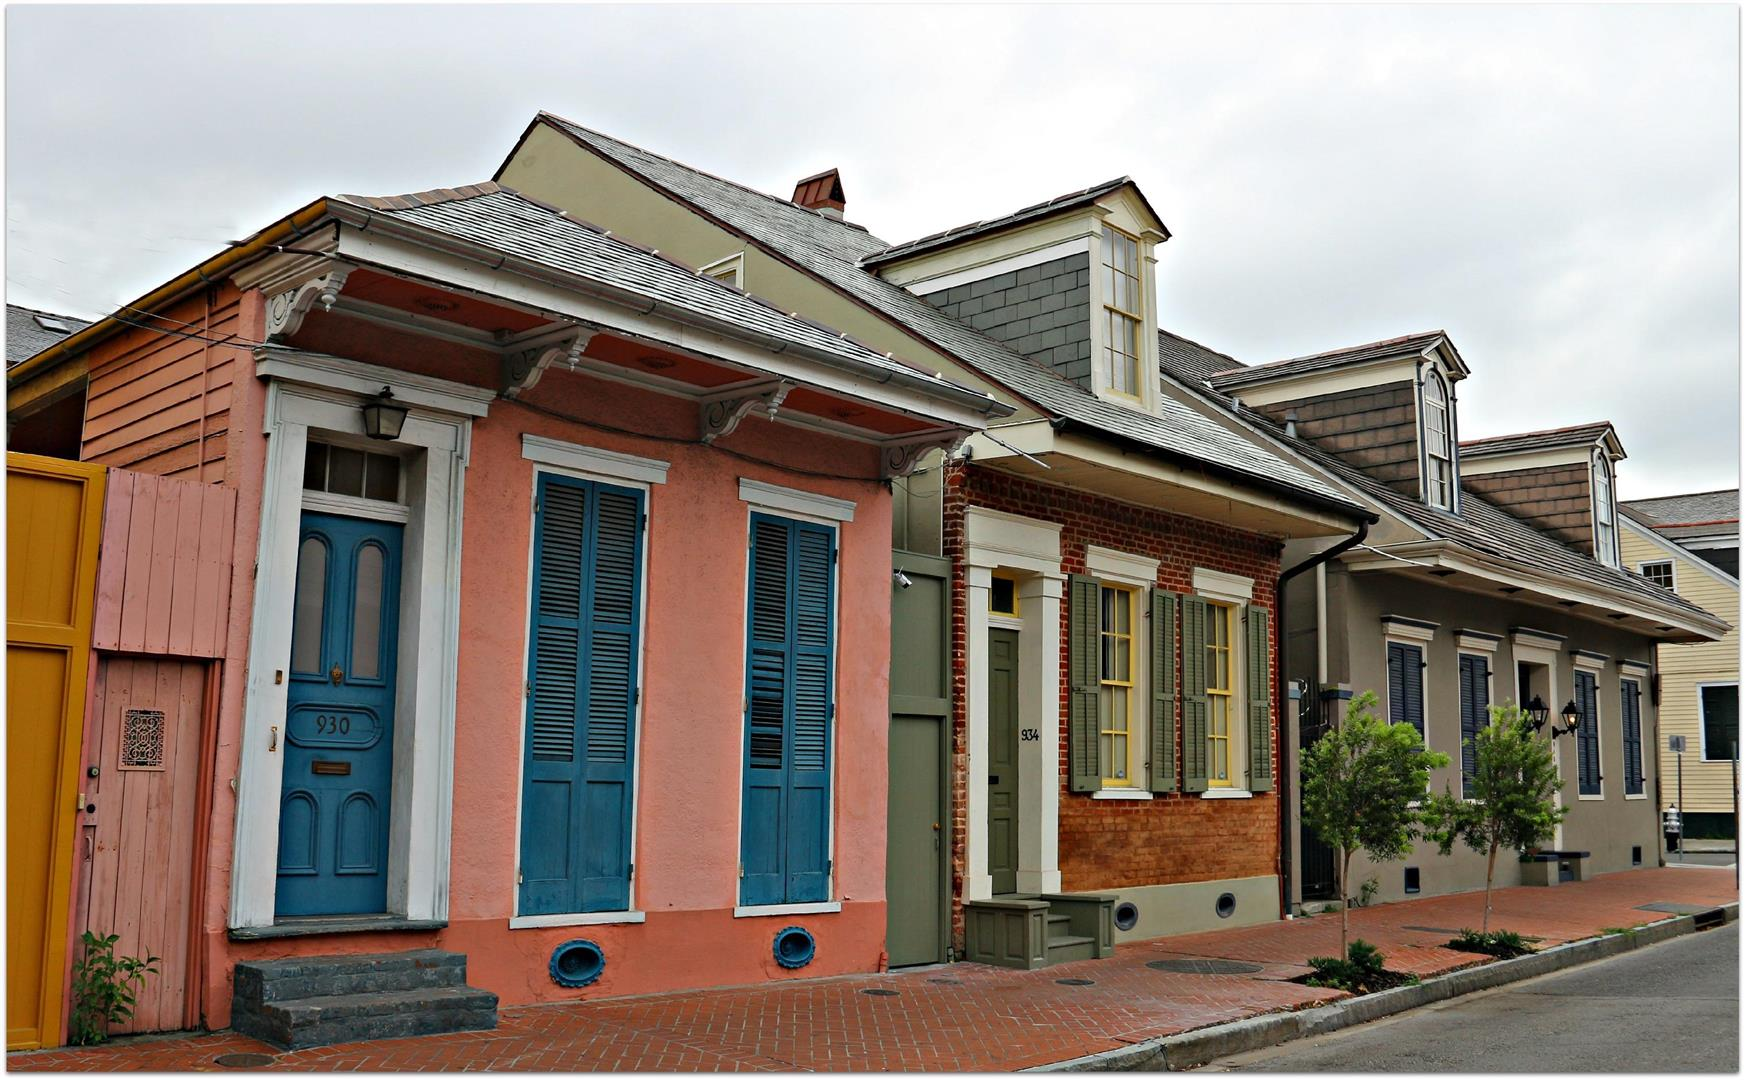 FrenchQuarterCottagesinNOLA.jpg